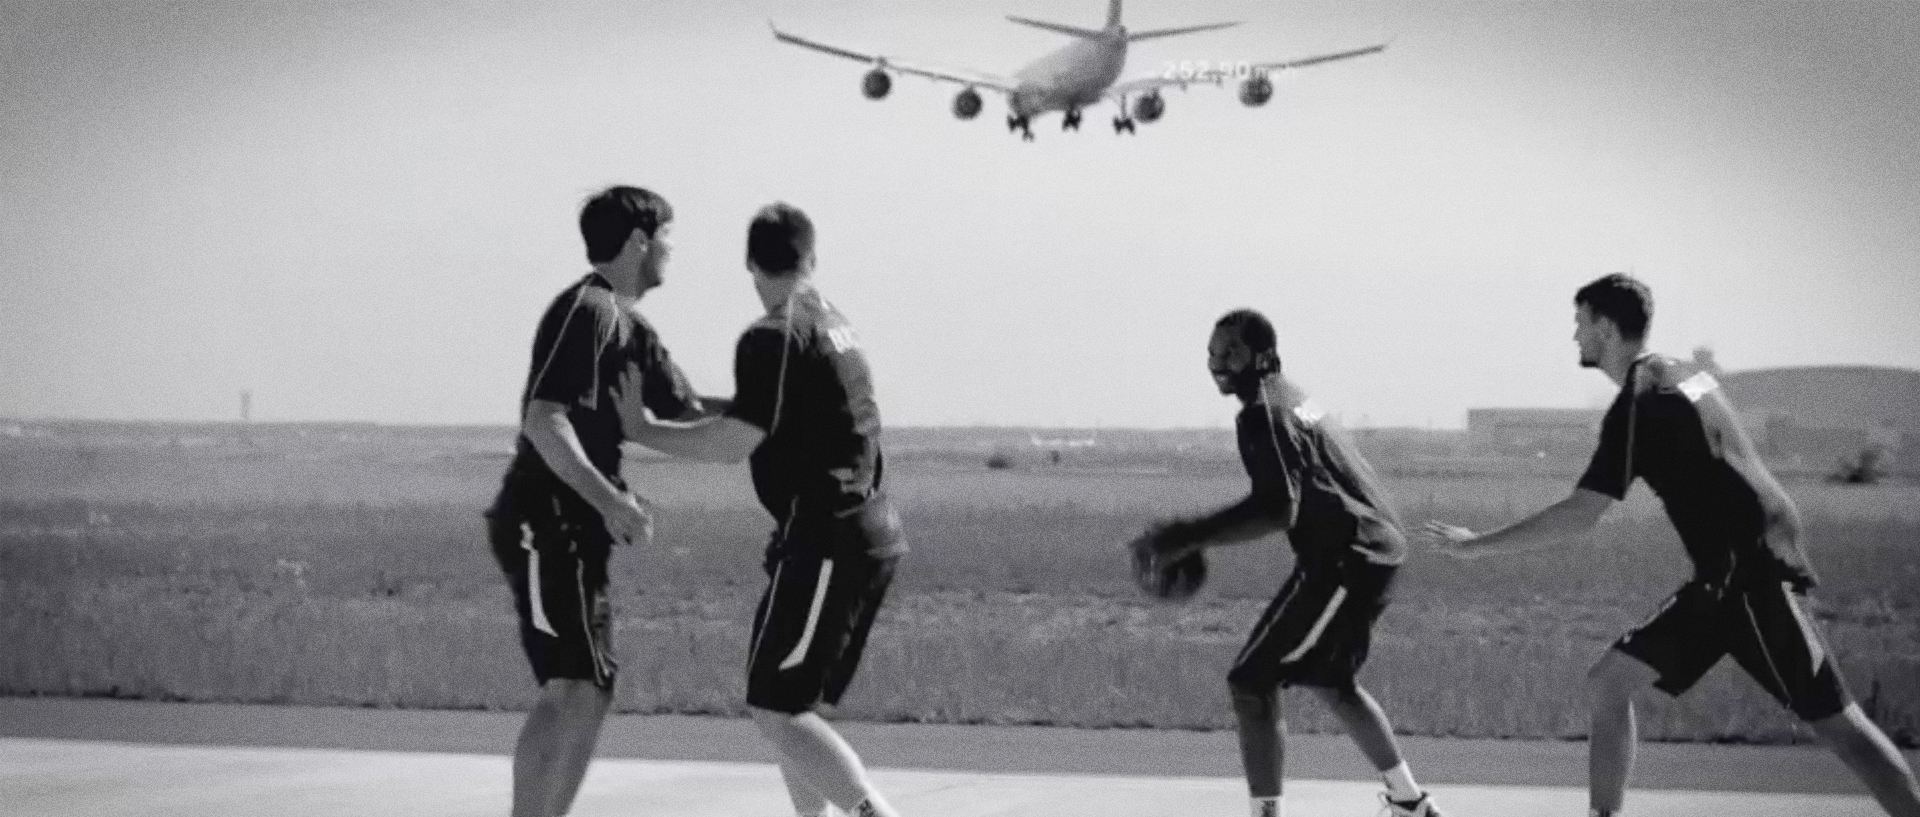 Fraport Skyliners 2013 - Director's Cut